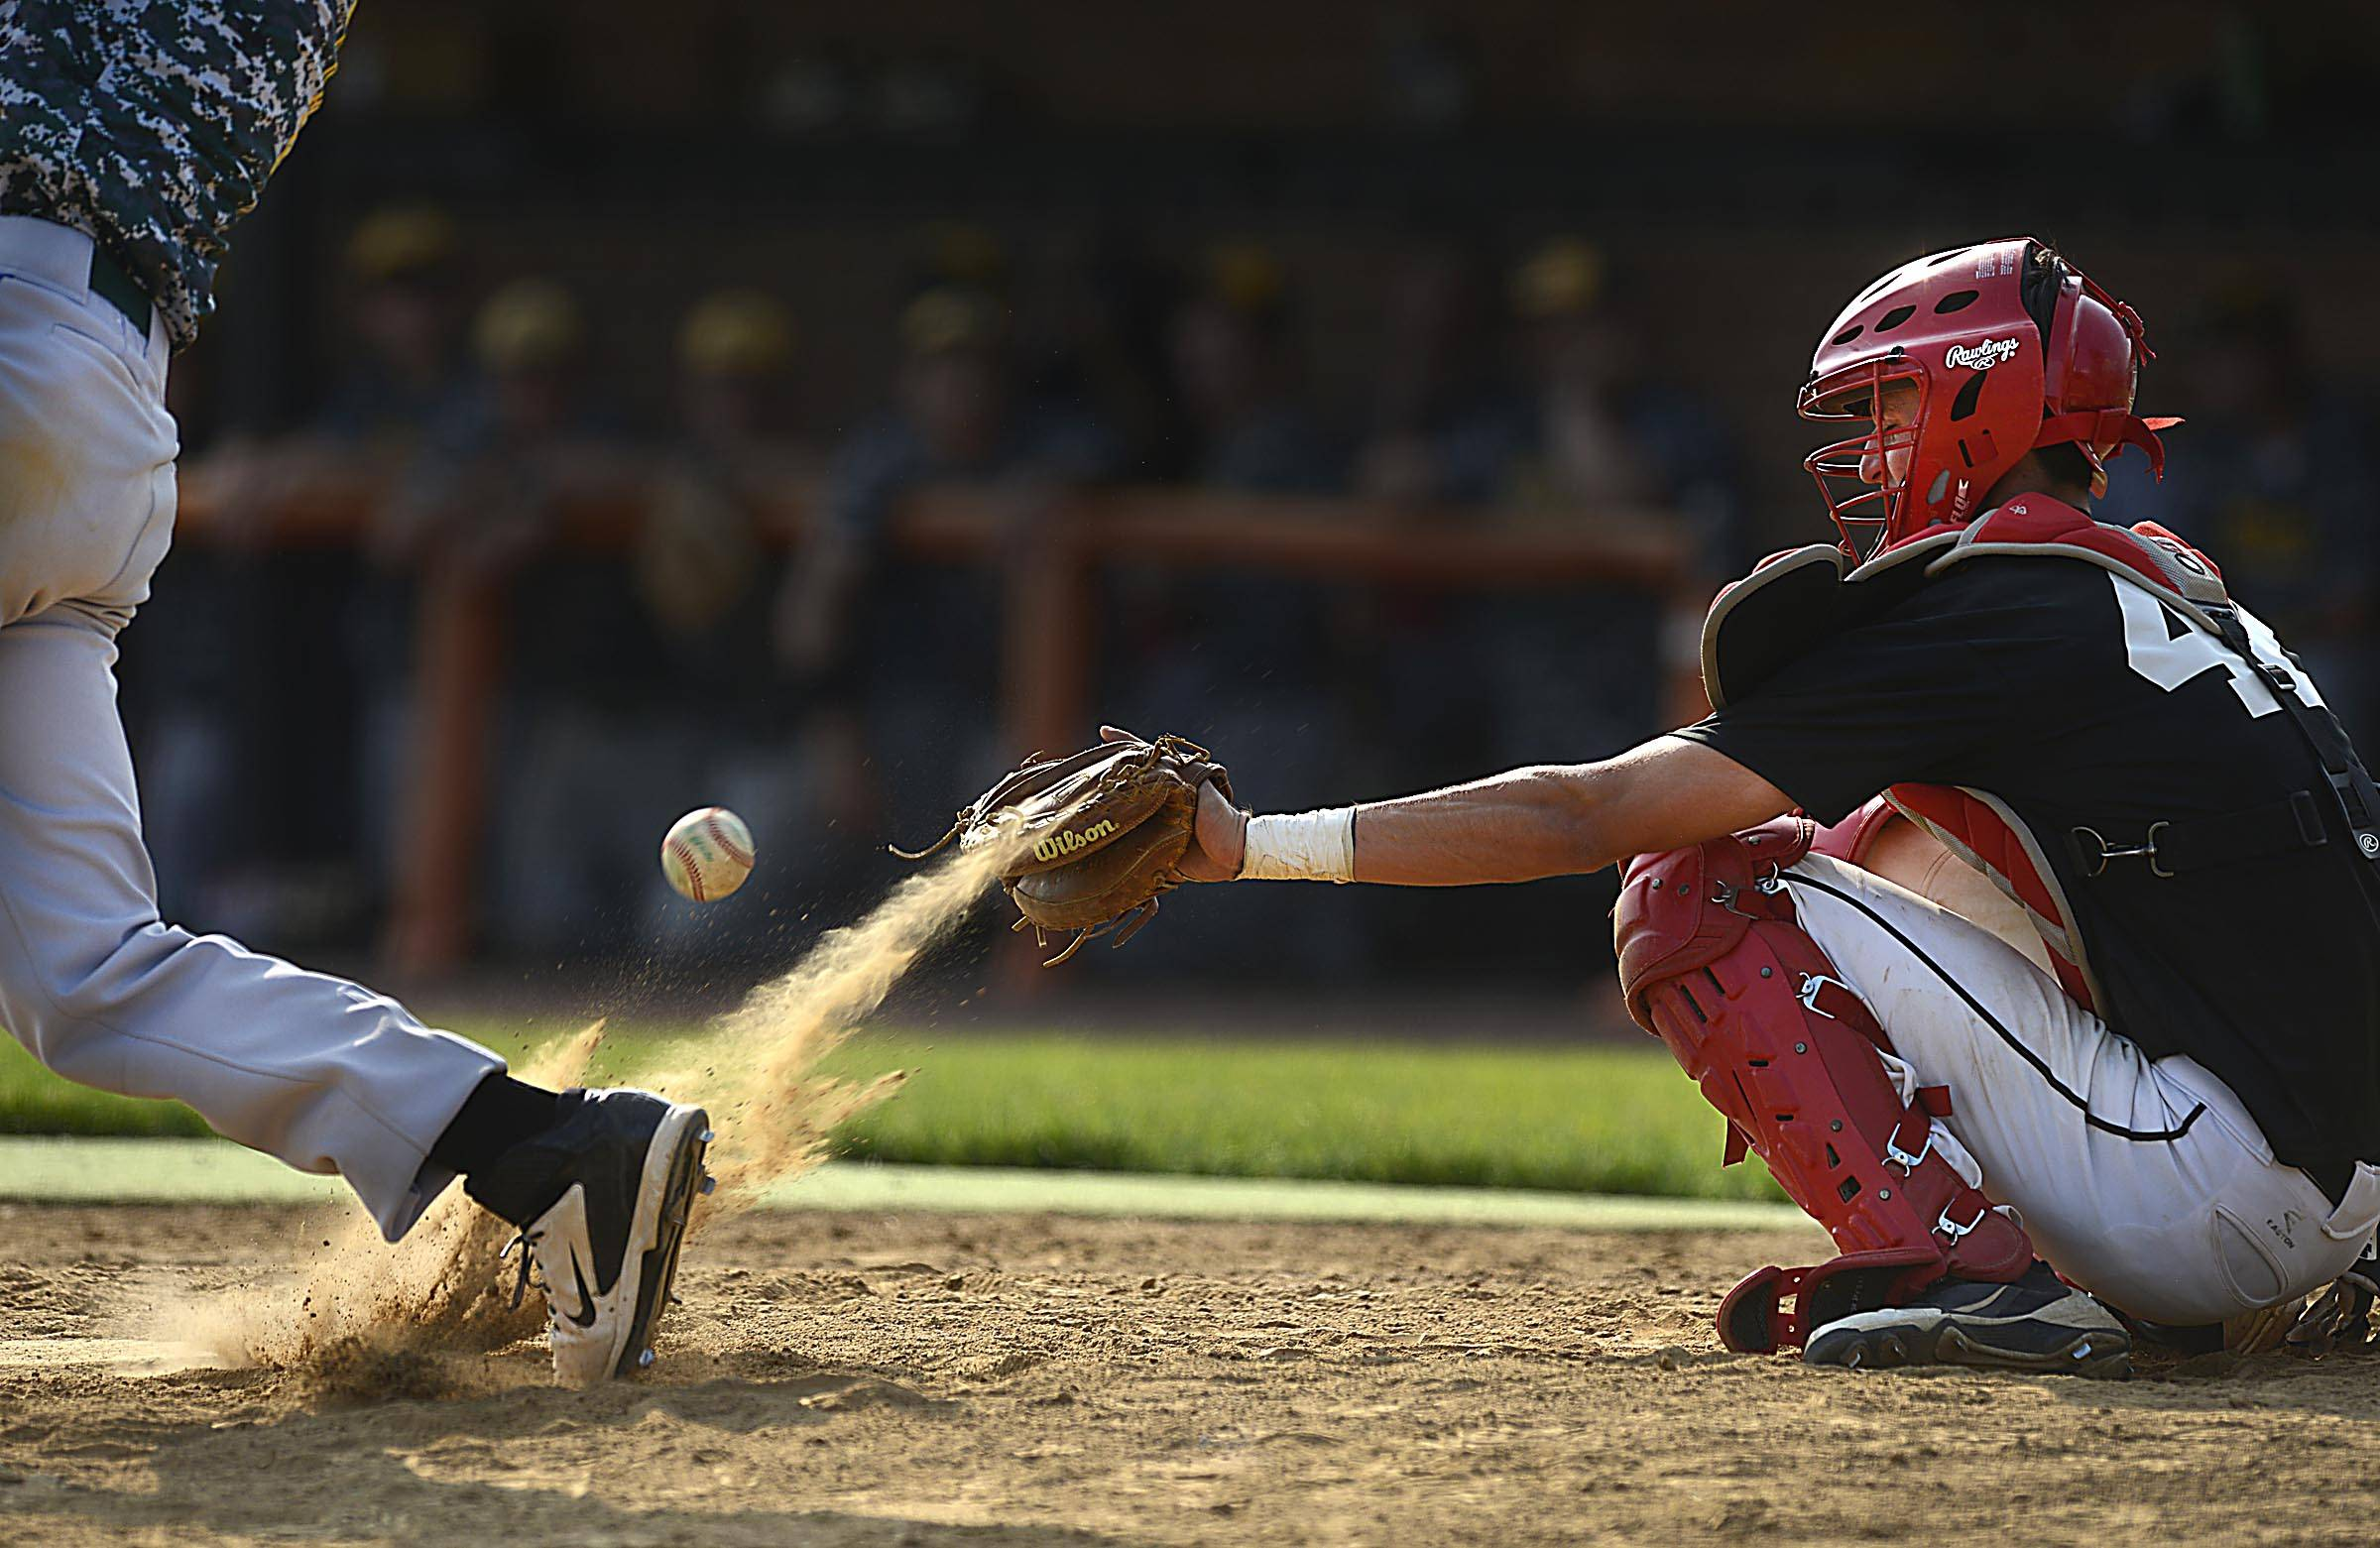 Batavia catcher Matt Musielak tries to glove a pitch in the dirt in the championship game of the St. Charles East regional state summer baseball tournament Thursday.